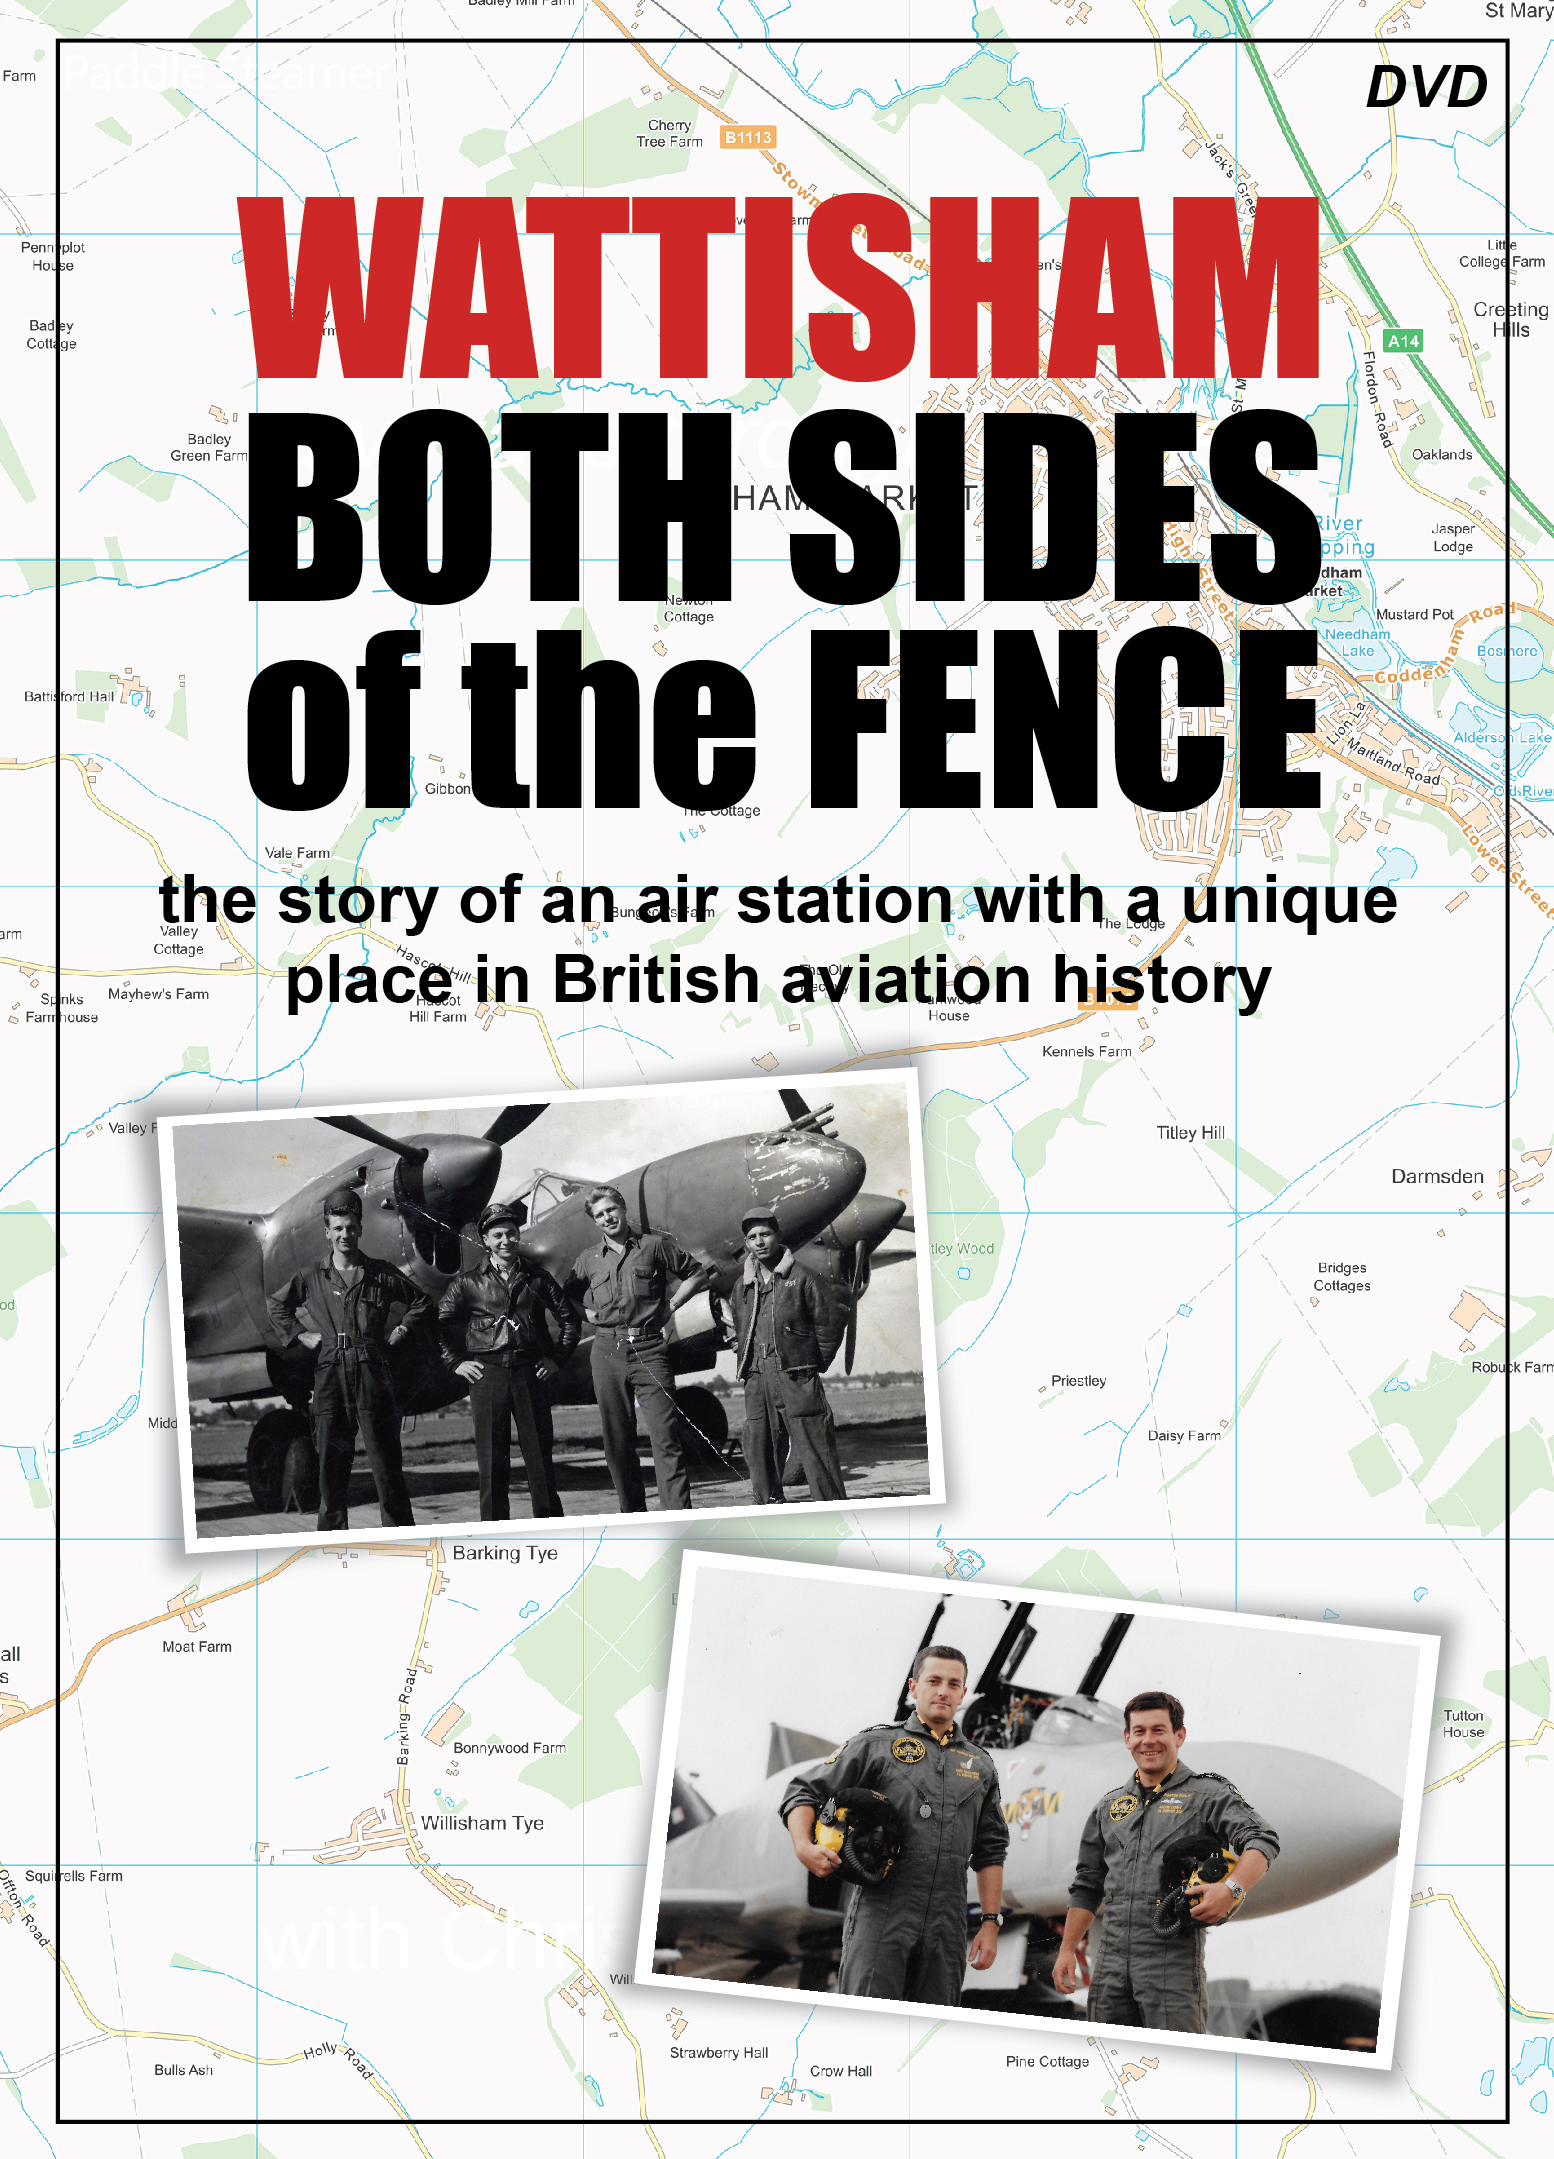 Wattisham Both Sides of the Fence - available OnDemand and as a double DVD